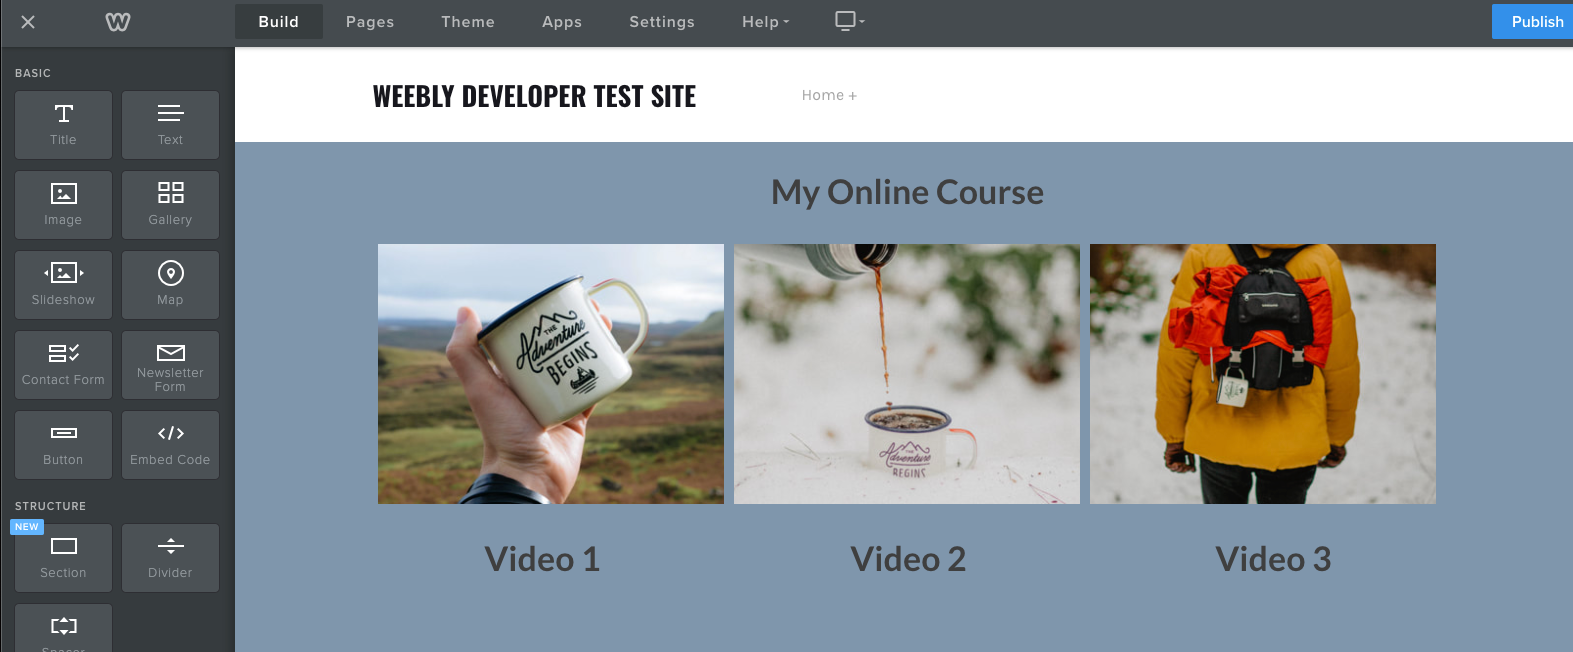 Weebly image gallery with text